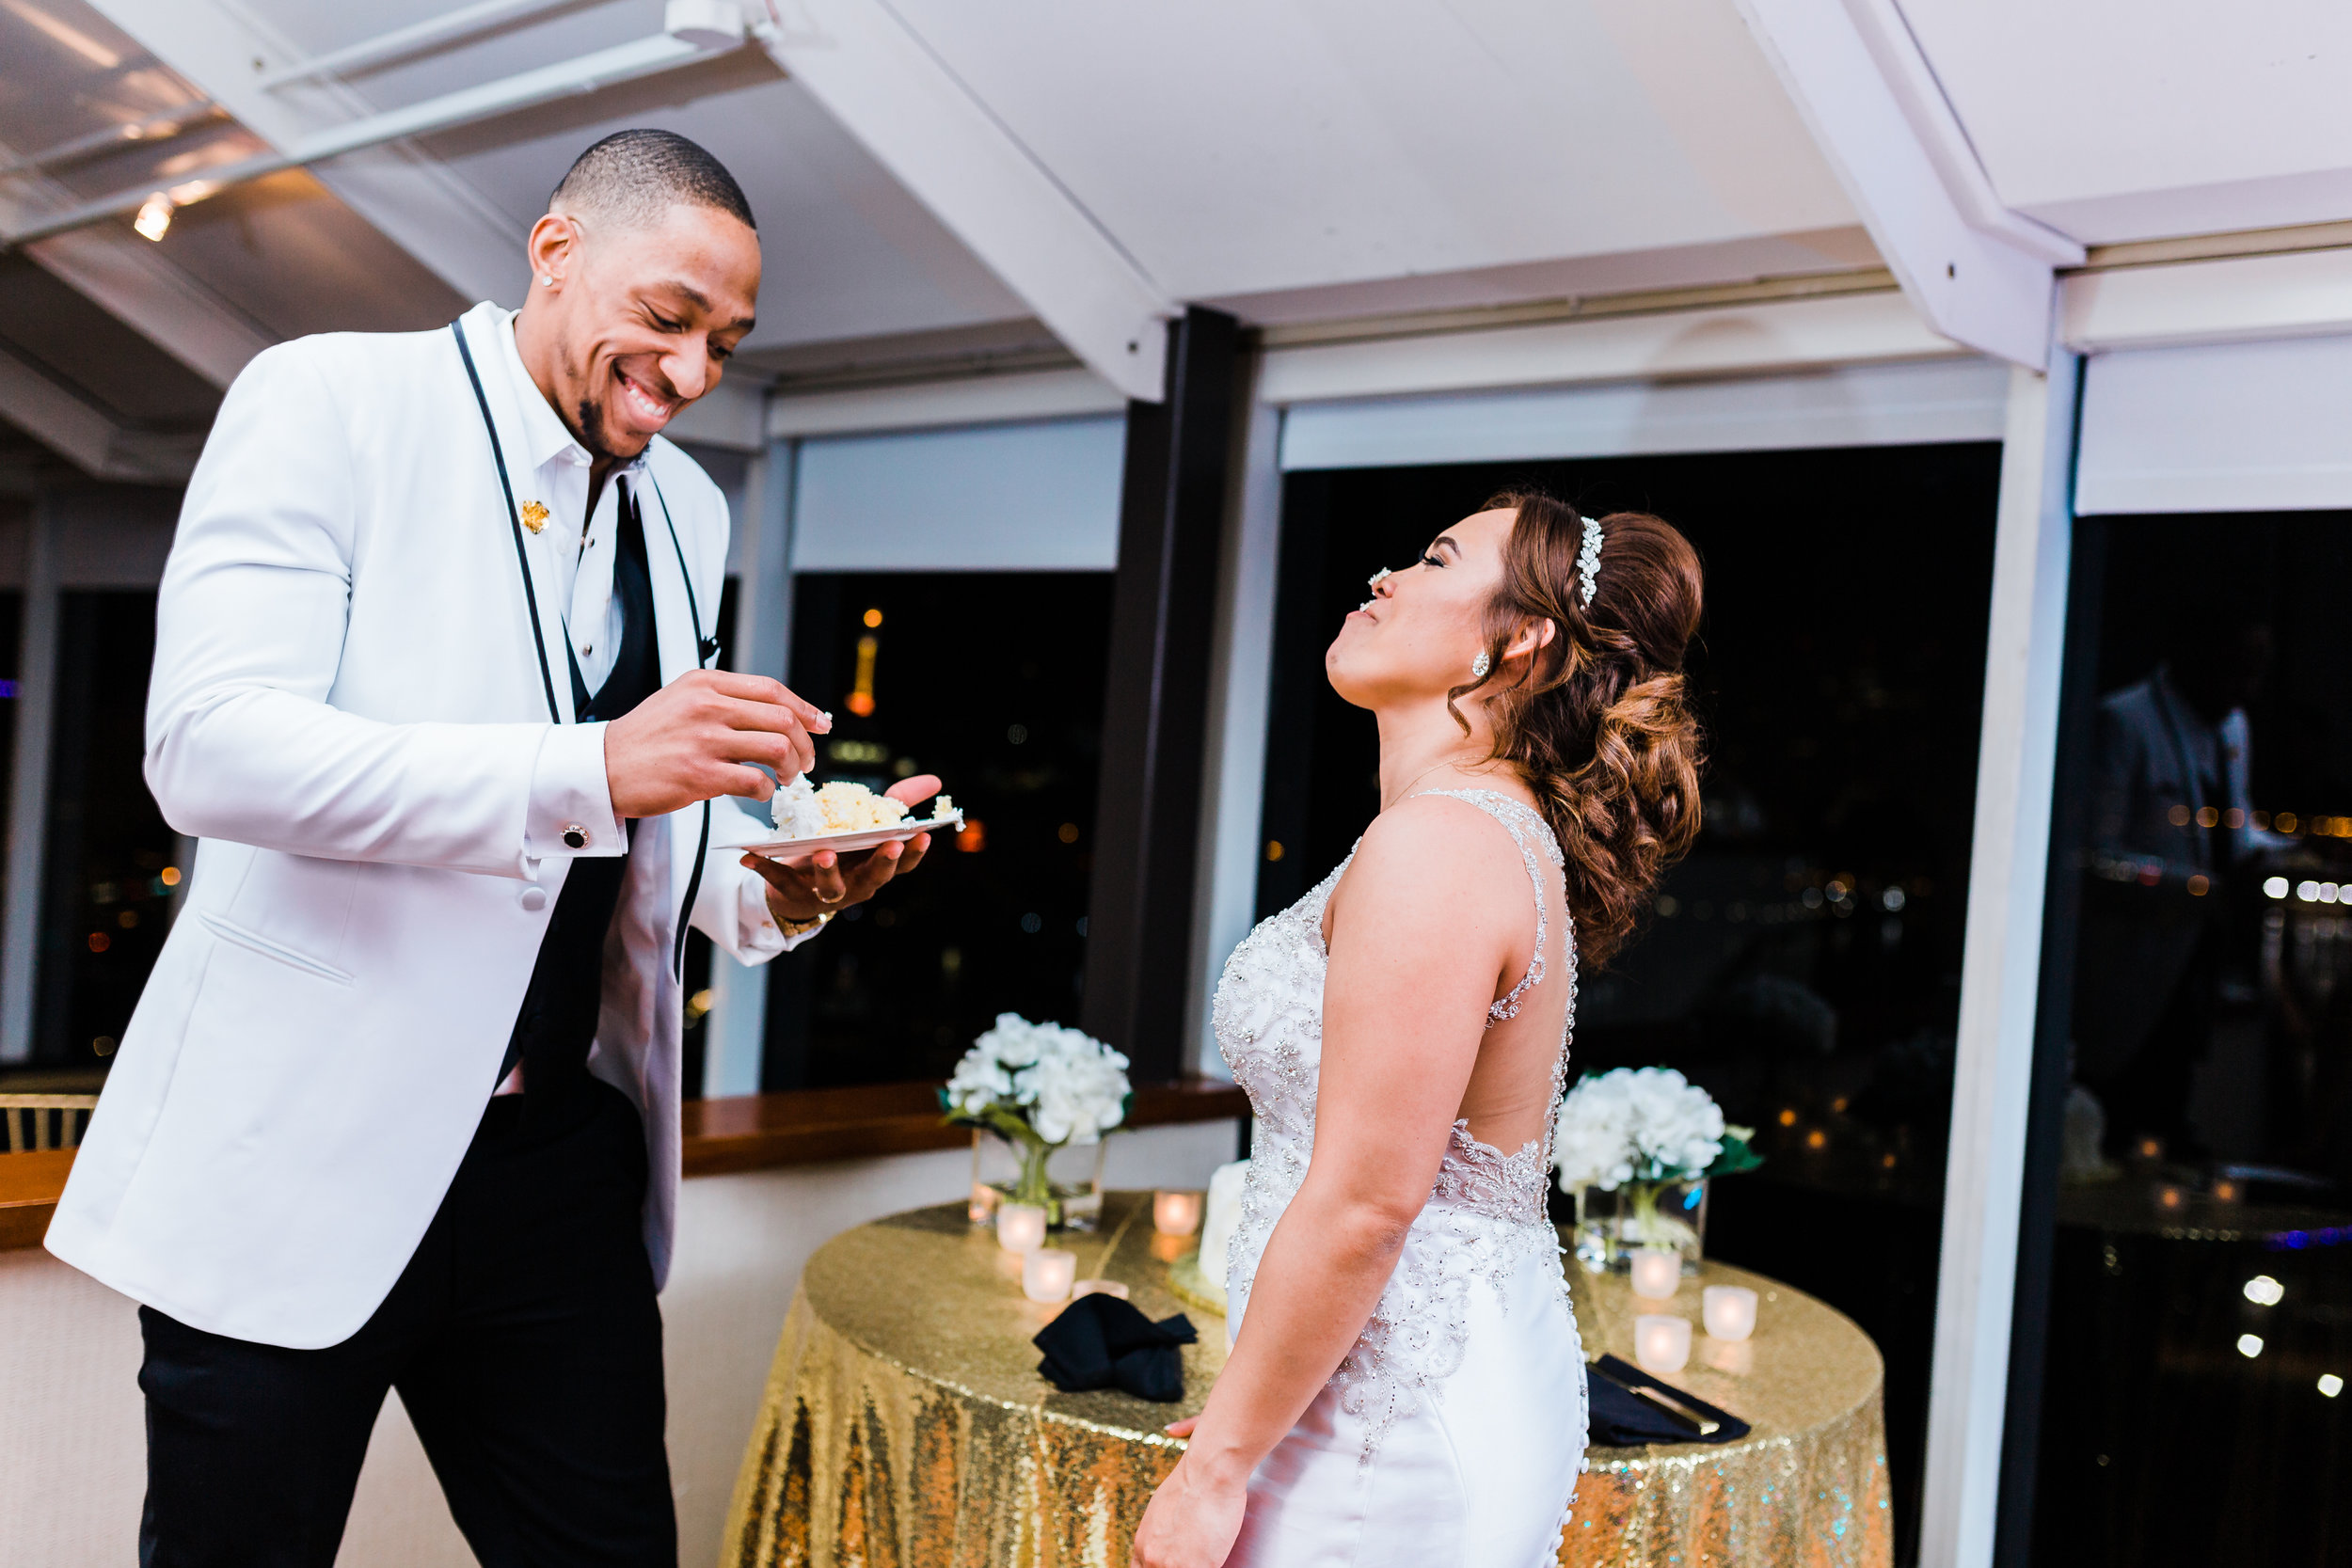 groom puts some icing on bride's nose